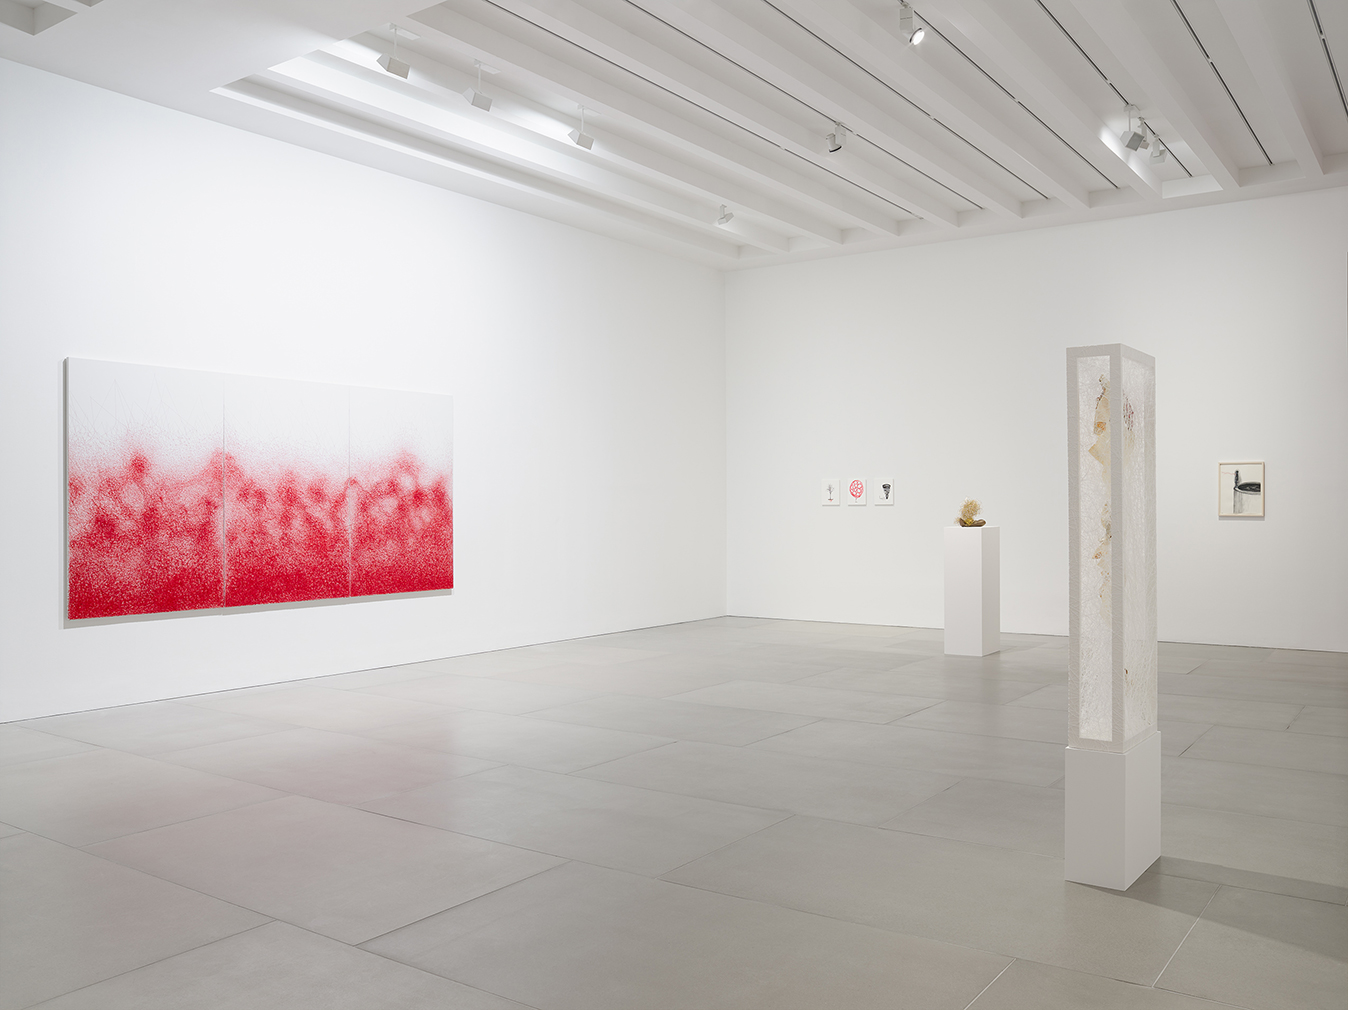 Chiharu Shiota, 'Me Somewhere Else' installation view. Courtesy of the arttist and Blain|Southern. Photography: Peter Mallet